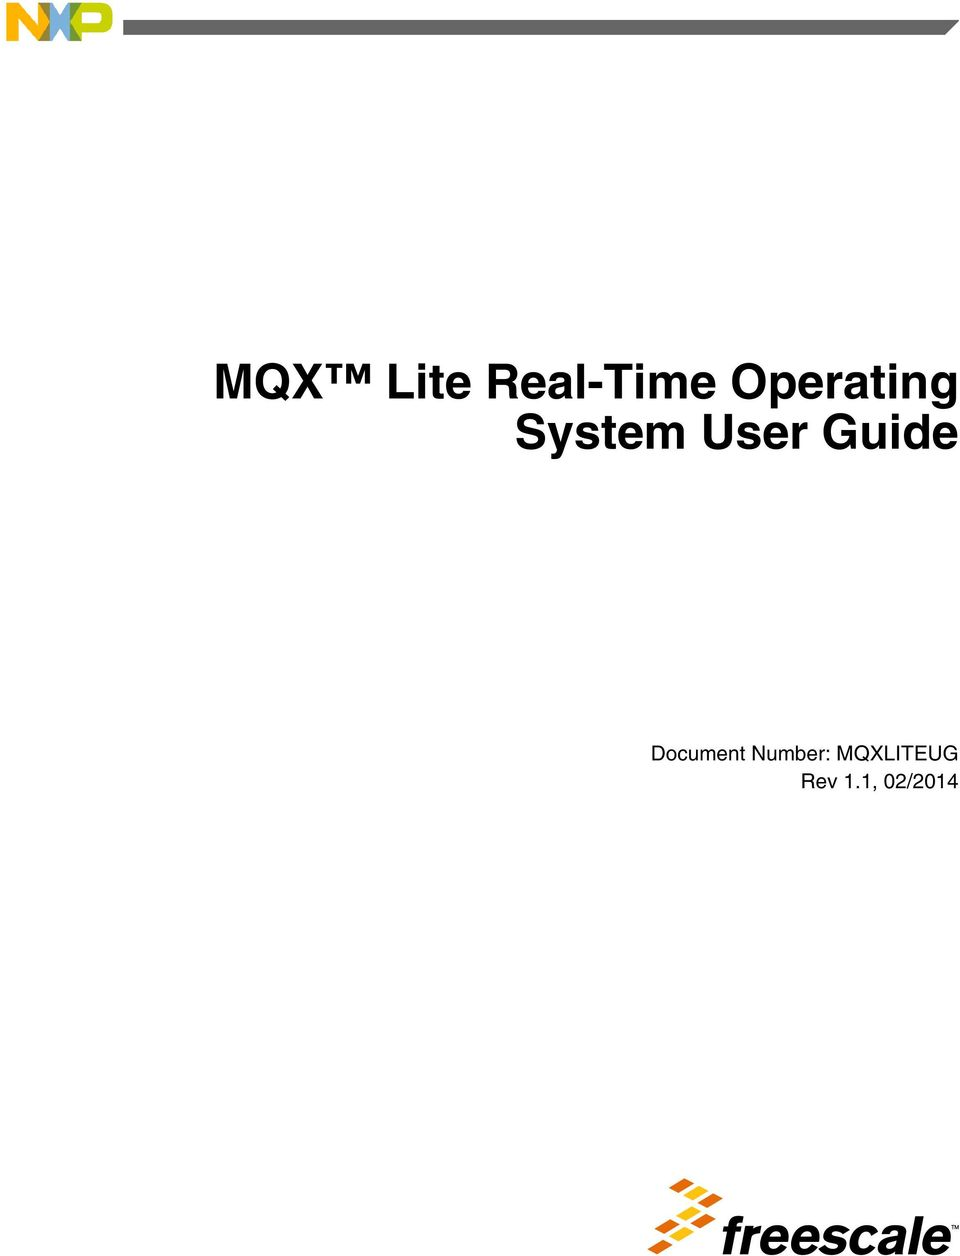 MQX Lite Real-Time Operating System User Guide - PDF